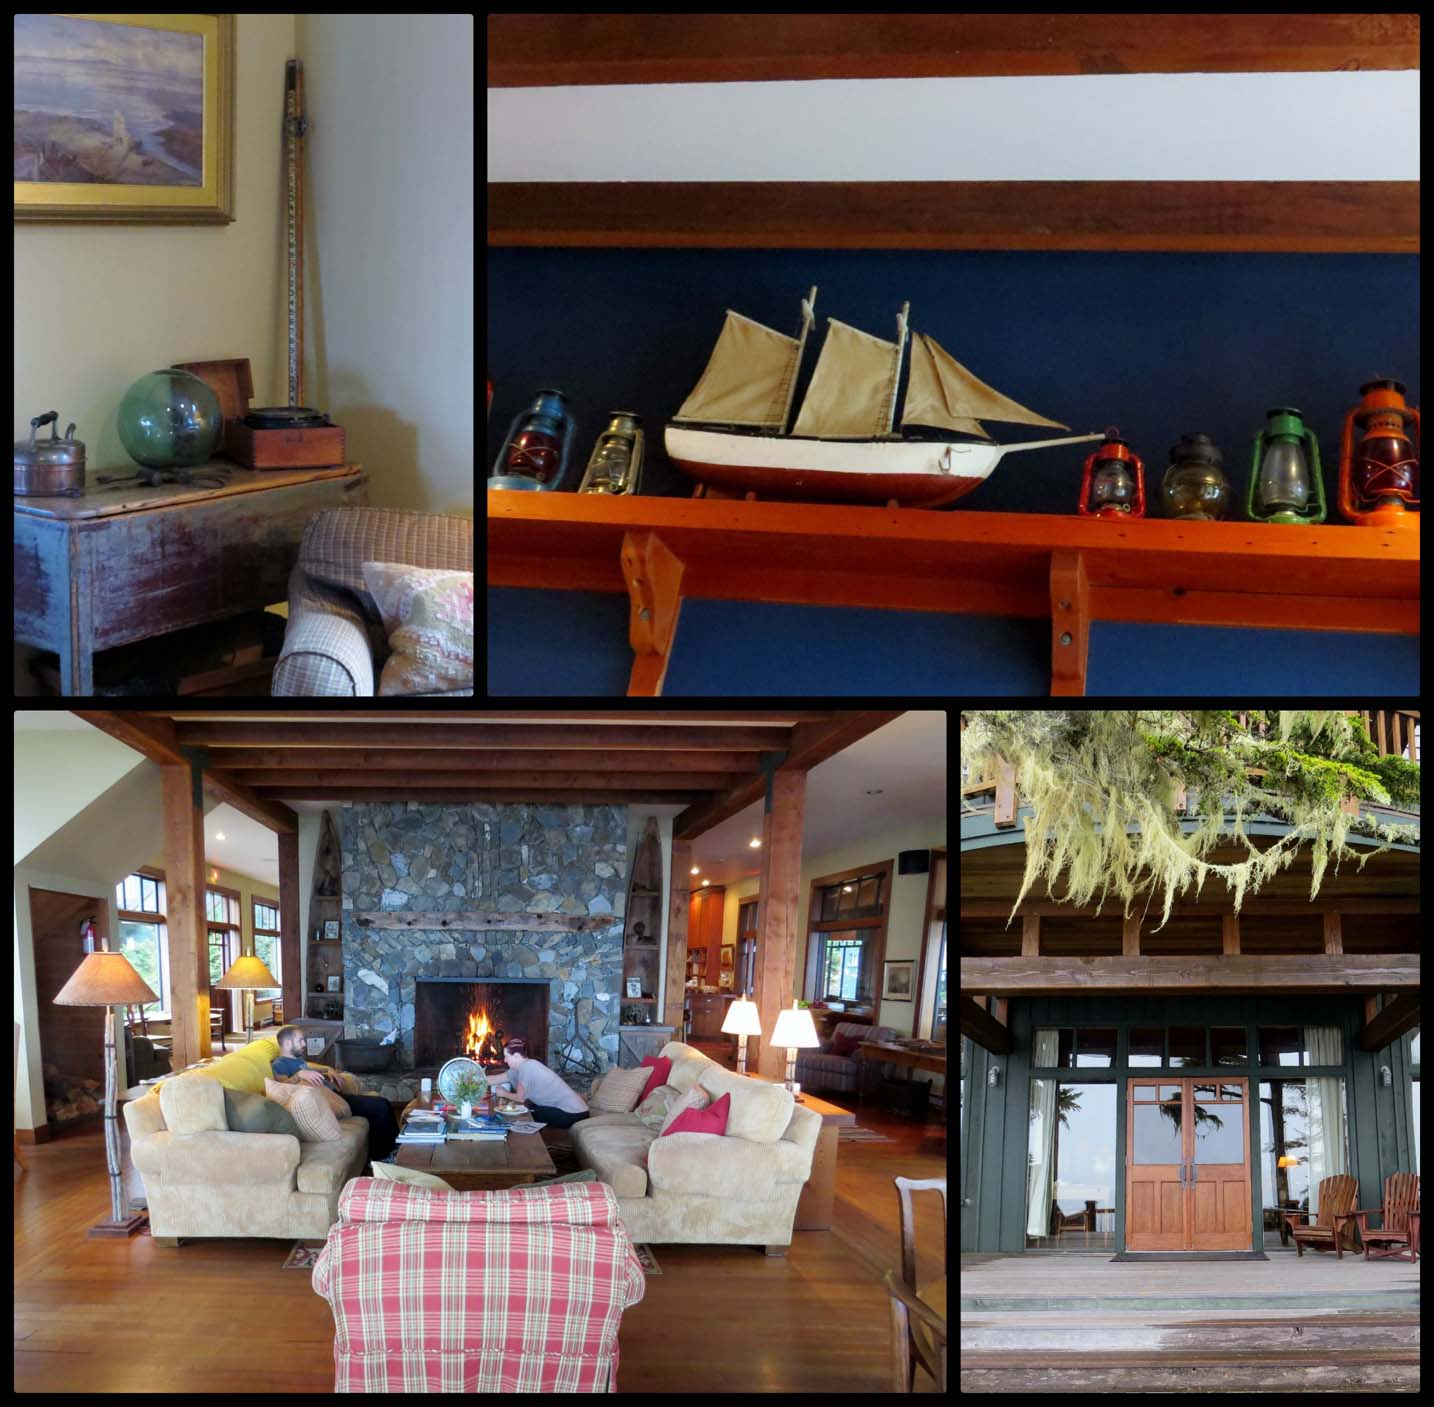 Perspectives of Middle Beach Lodge, Tofino